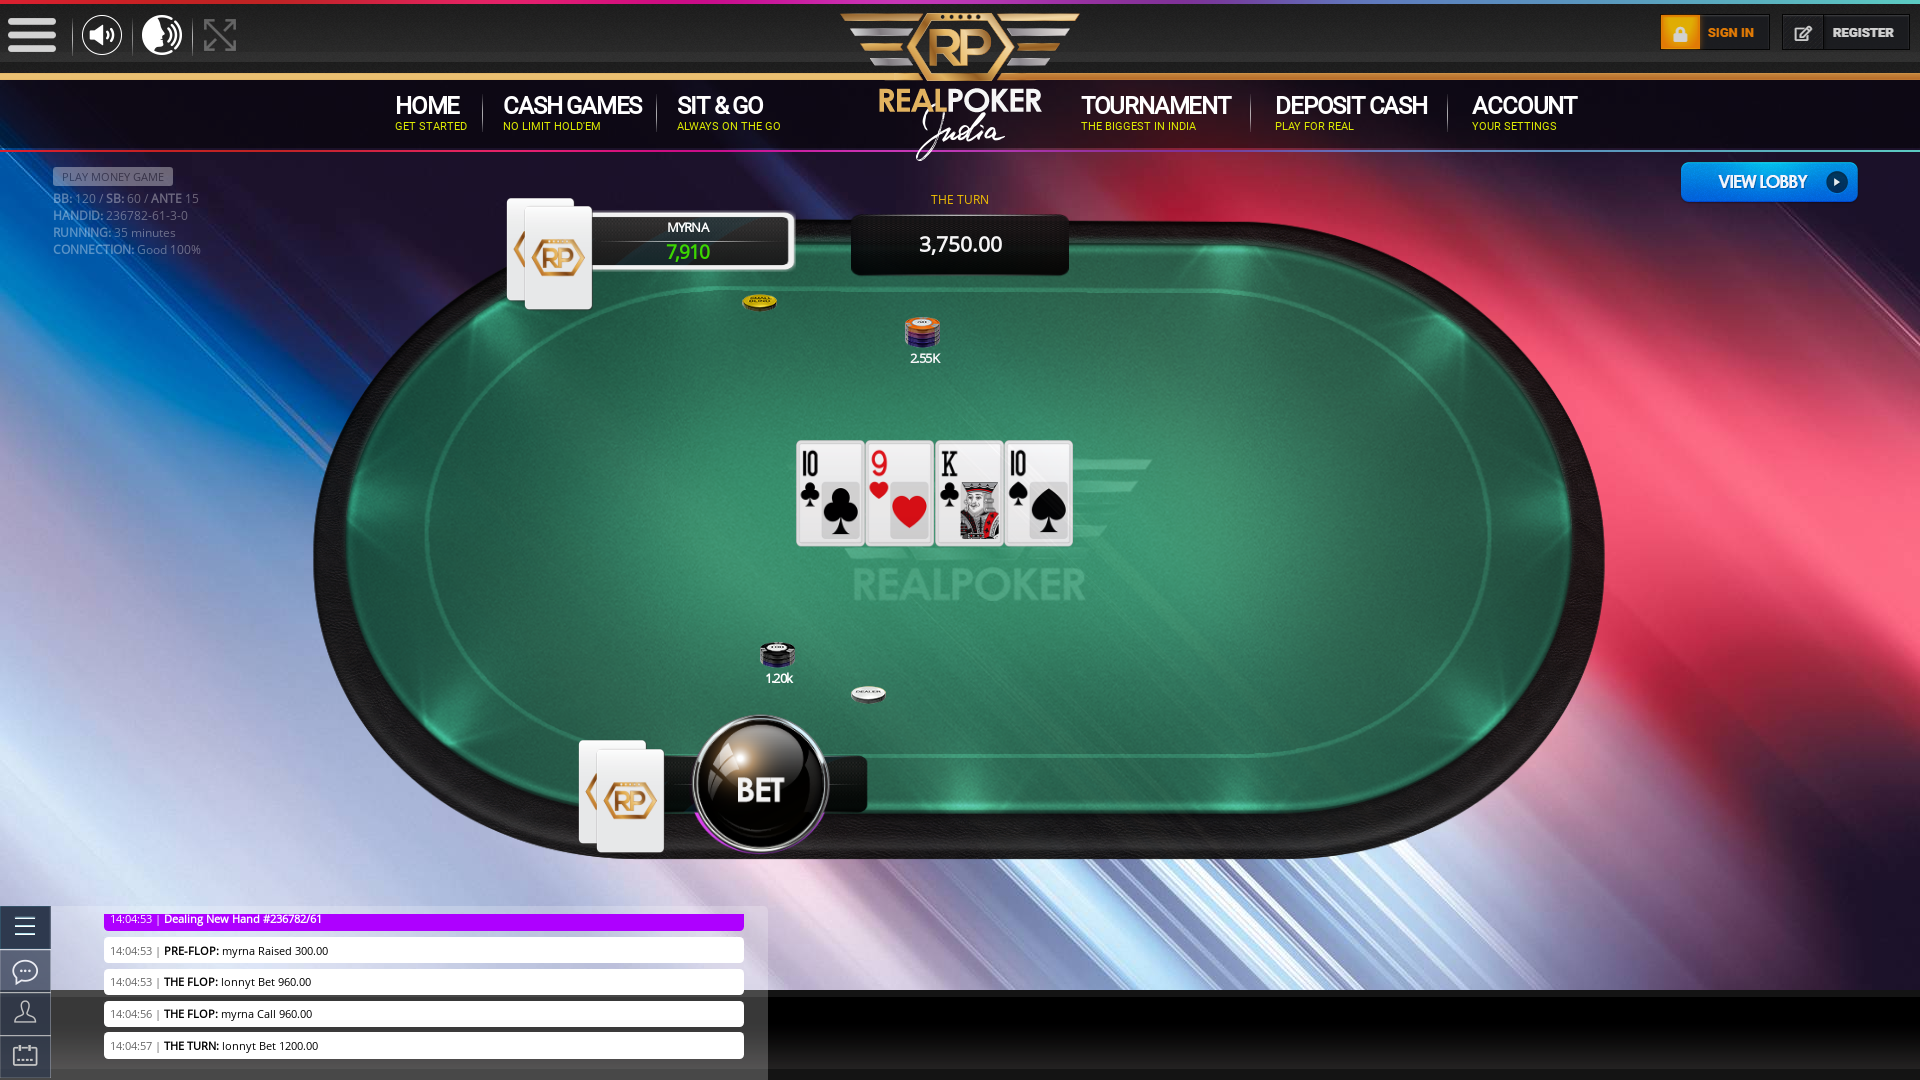 Indian online poker on a 10 player table in the 35th minute match up